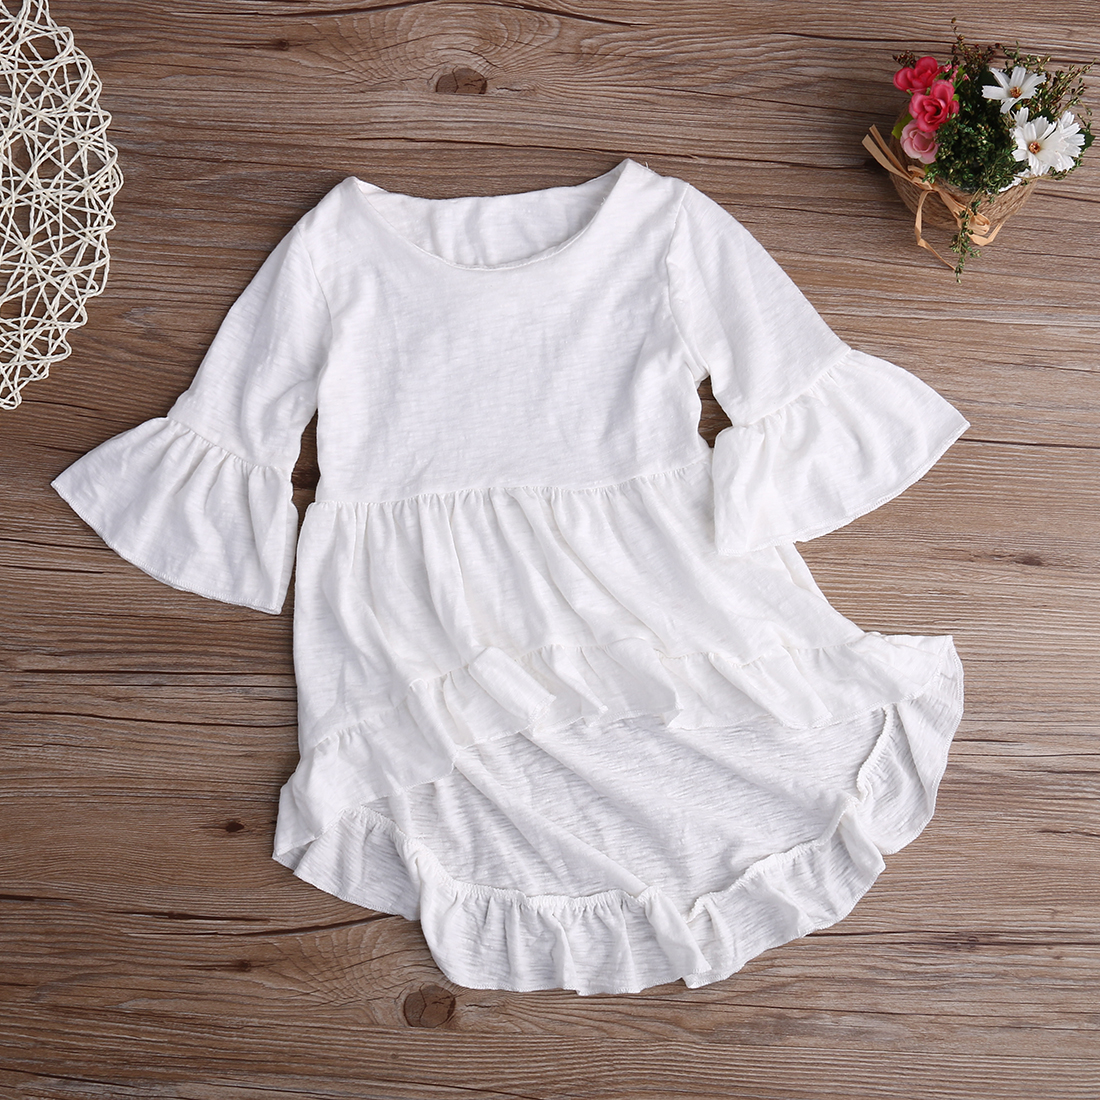 White Baby Girls Dress Frills Flare Sleeve Top T-Shirt Party Ruffles Hem Dresses 1-6Y